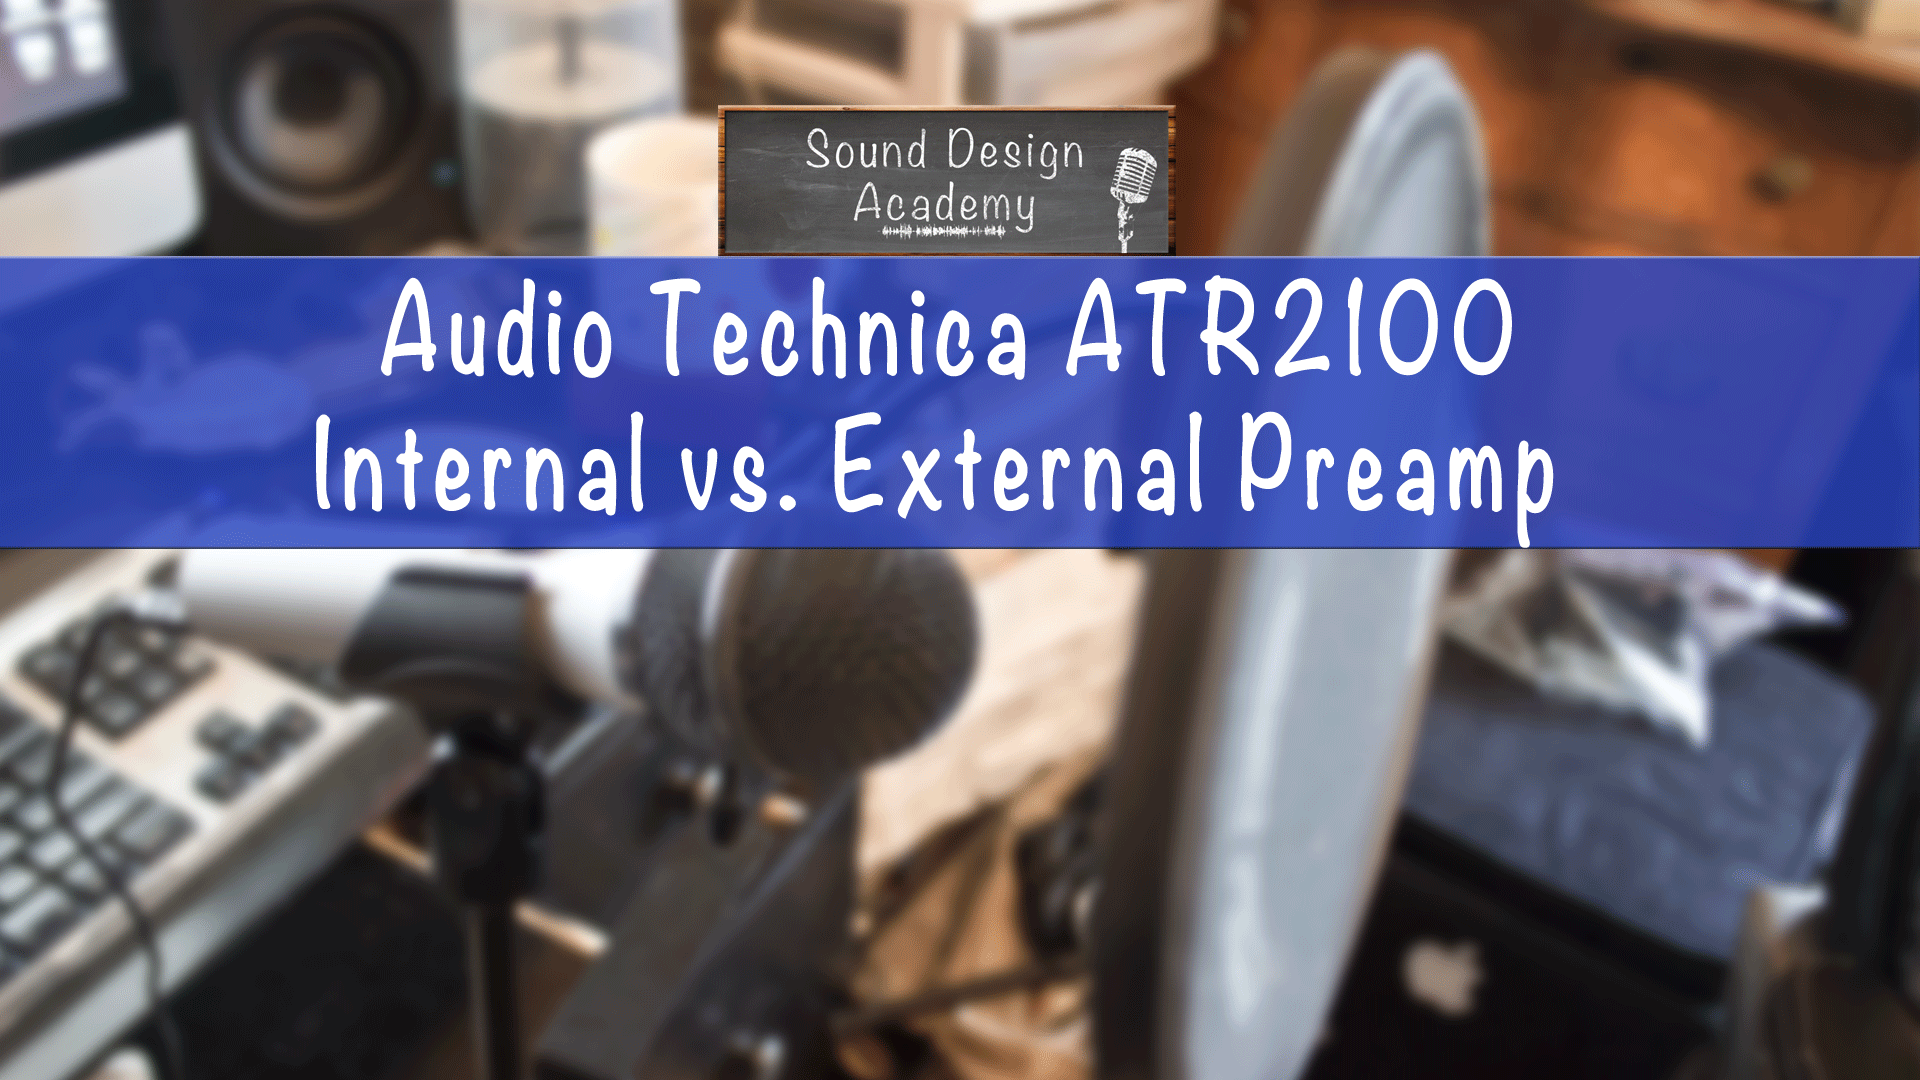 ATR2100-Internal-Vs.-External-Preamp